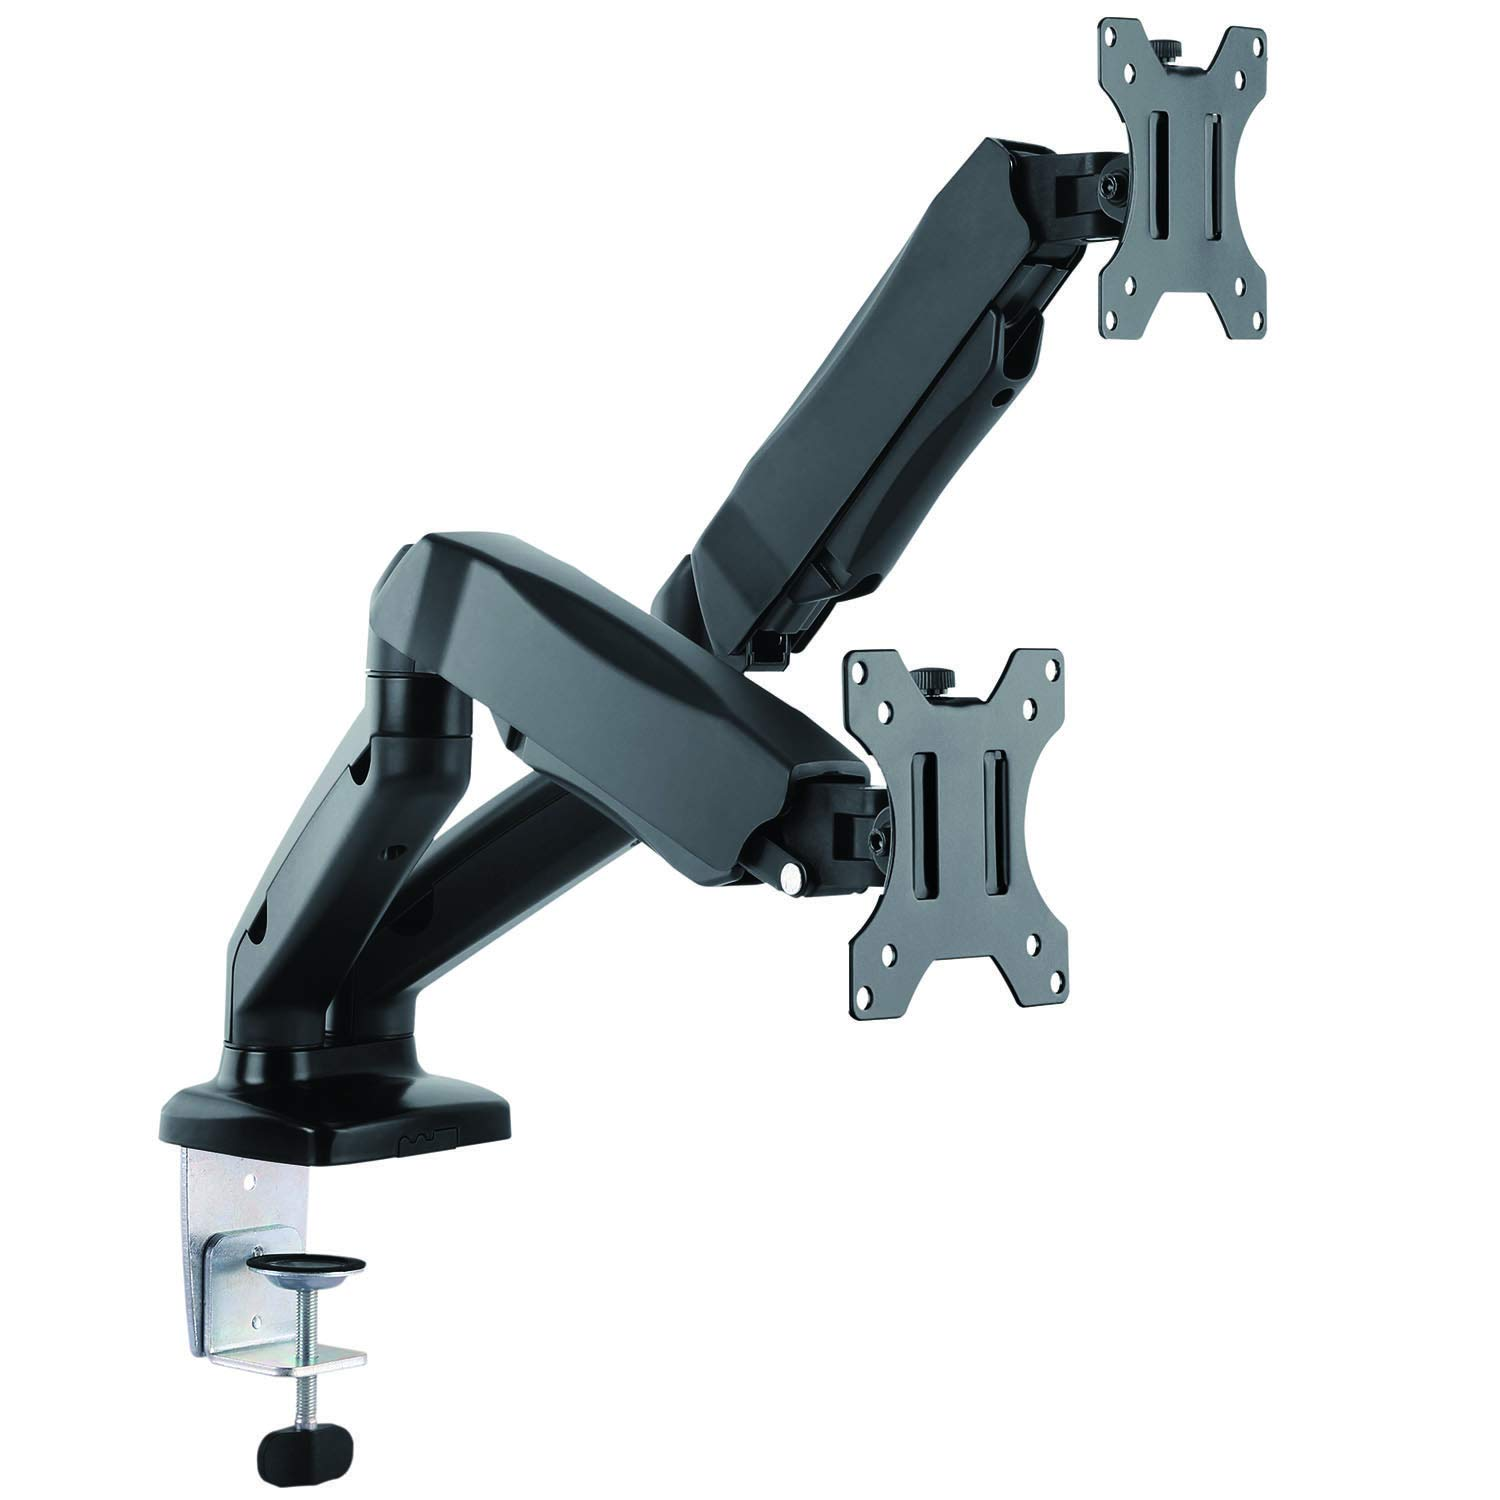 """WALI Universal Dual LCD Monitor Fully Adjustable Gas Spring Desk Mount Fit Two Screens VESA up to 27"""", 15.4 lbs. Weight Capacity per Arm (GSM002), Black"""